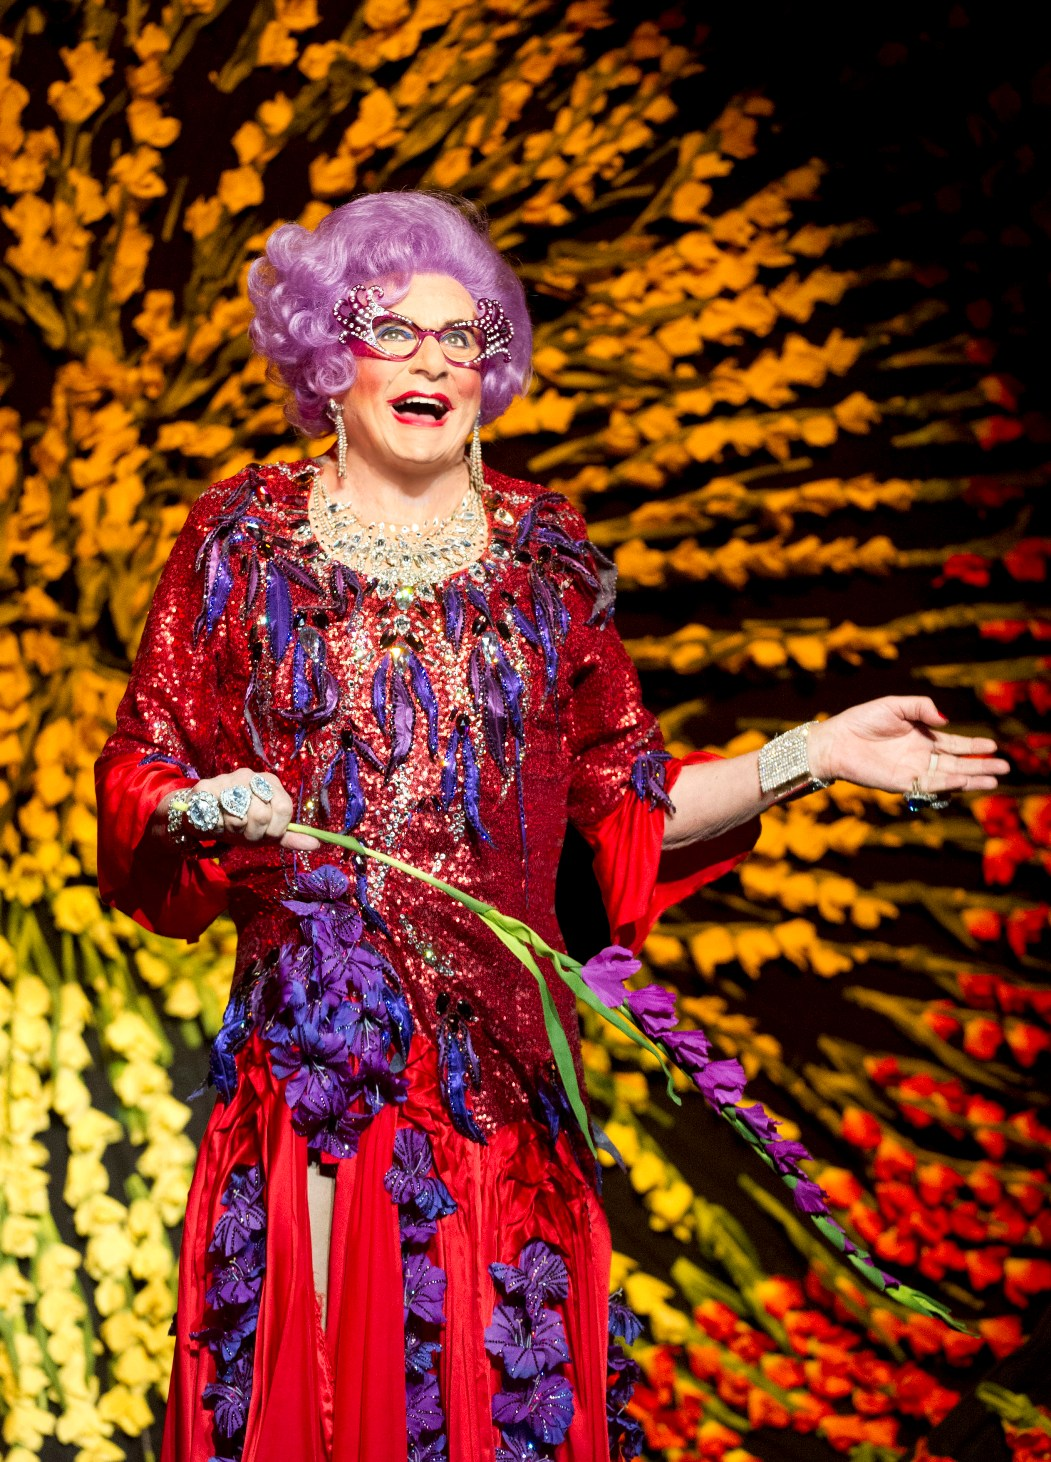 Floral finale to Dame Edna's farewell by Alastair Muir